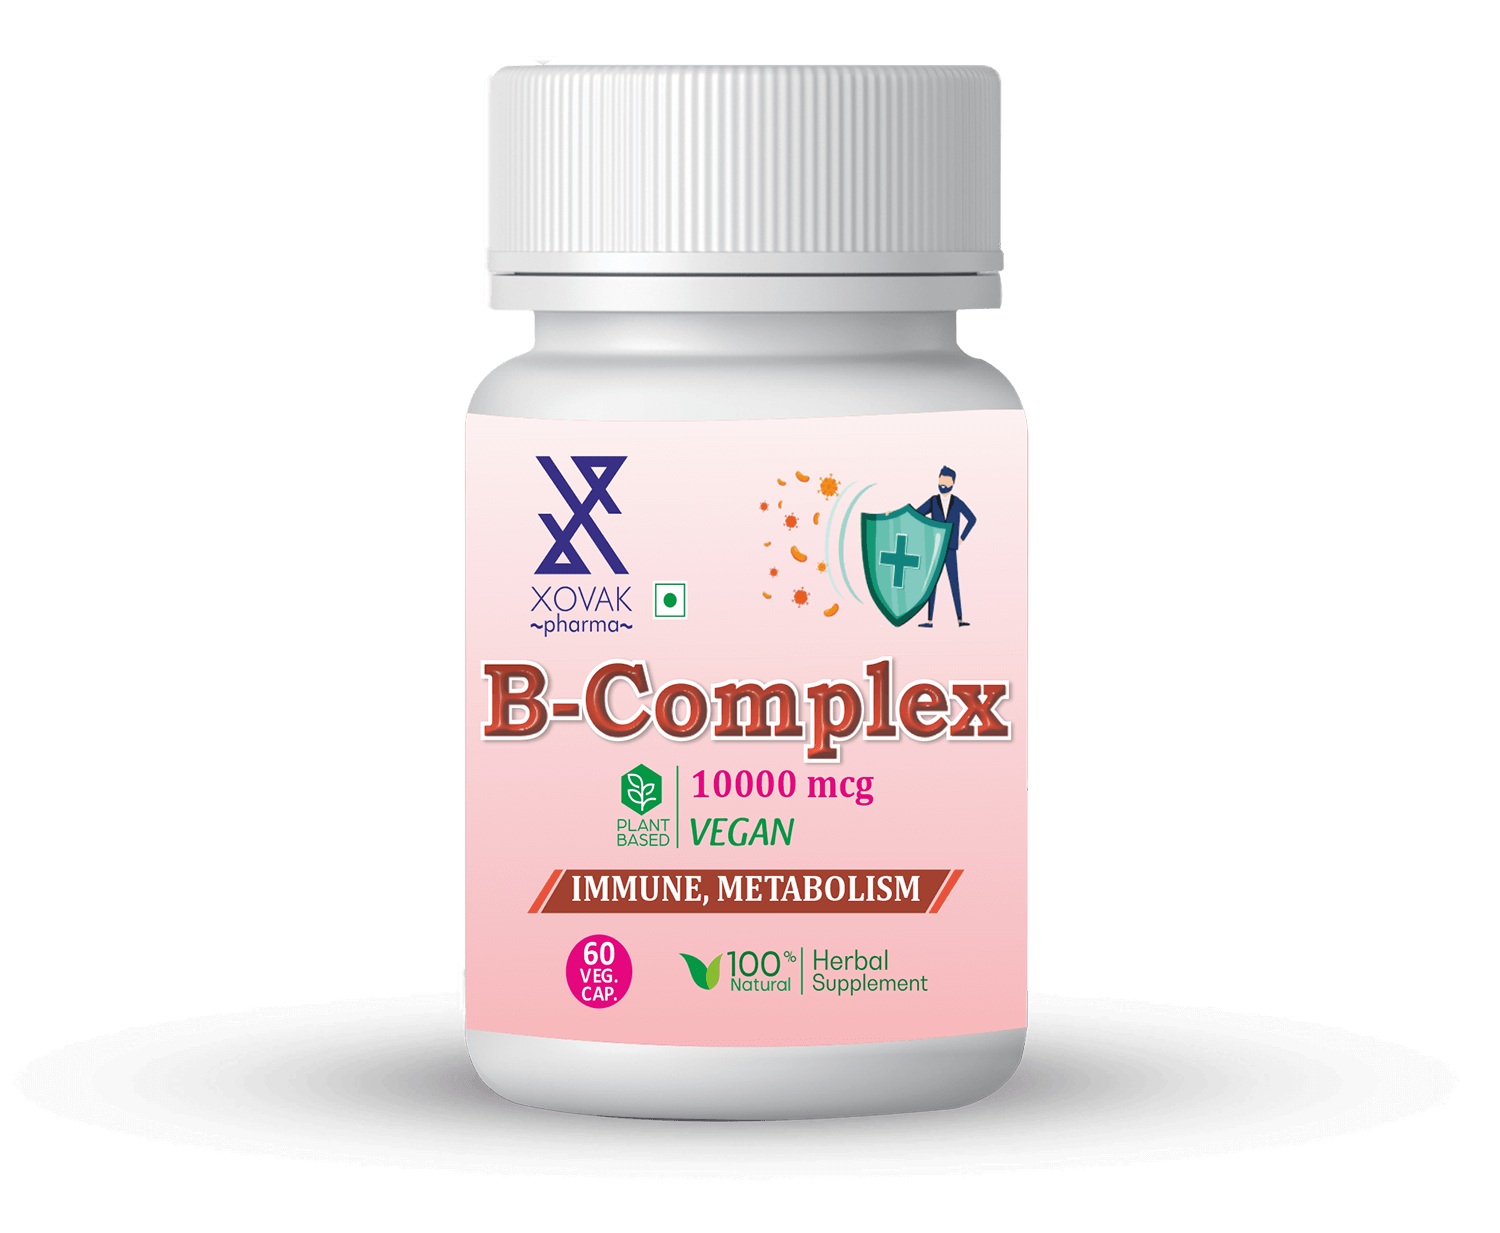 B-Complex Capsules For Immune Health, Support Bone, And Metabolism 10